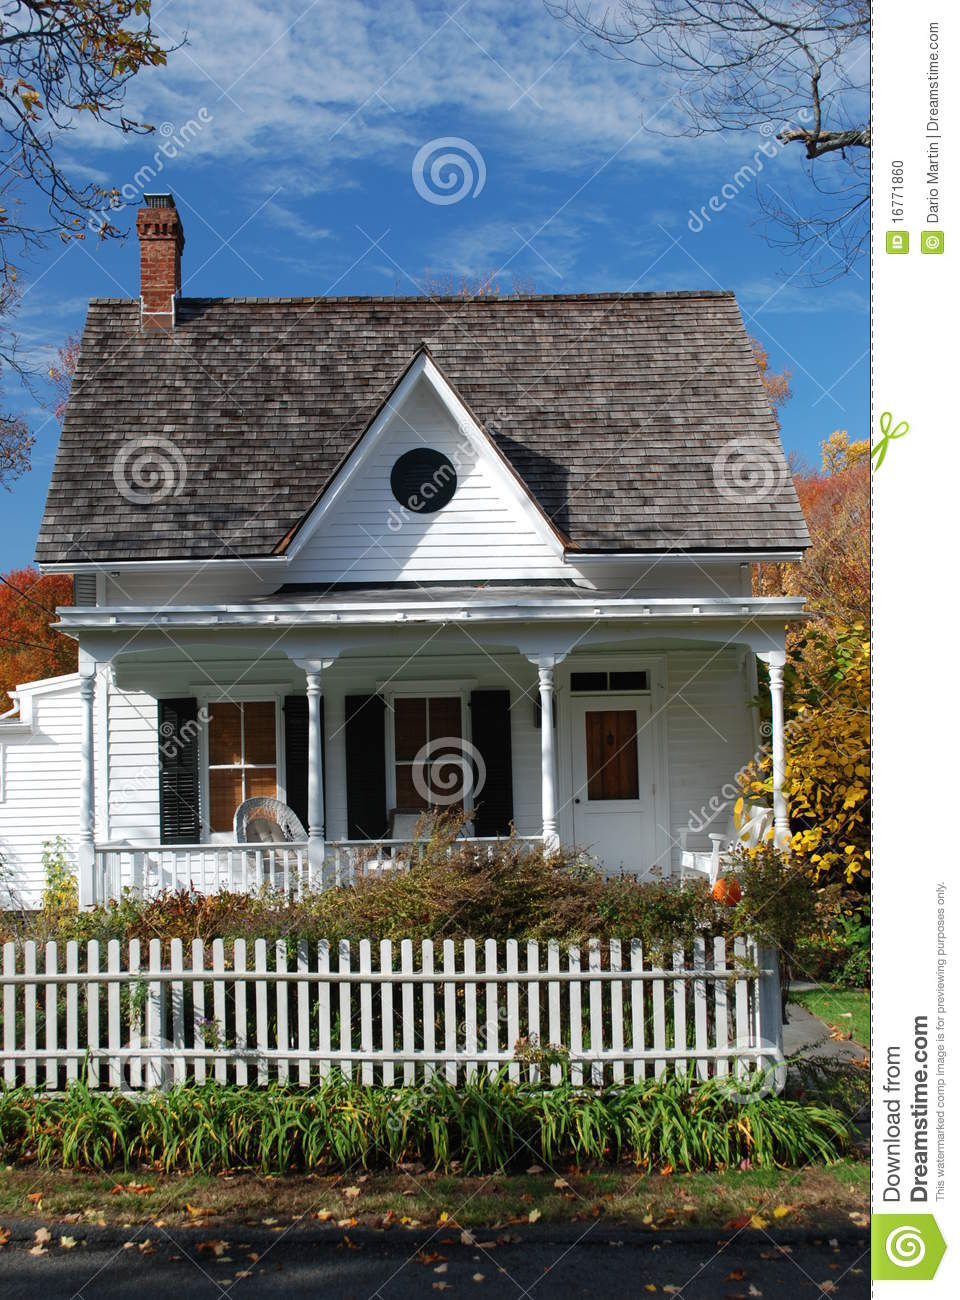 Small house in new york state stock photo image 16771860 for Modern houses in new york